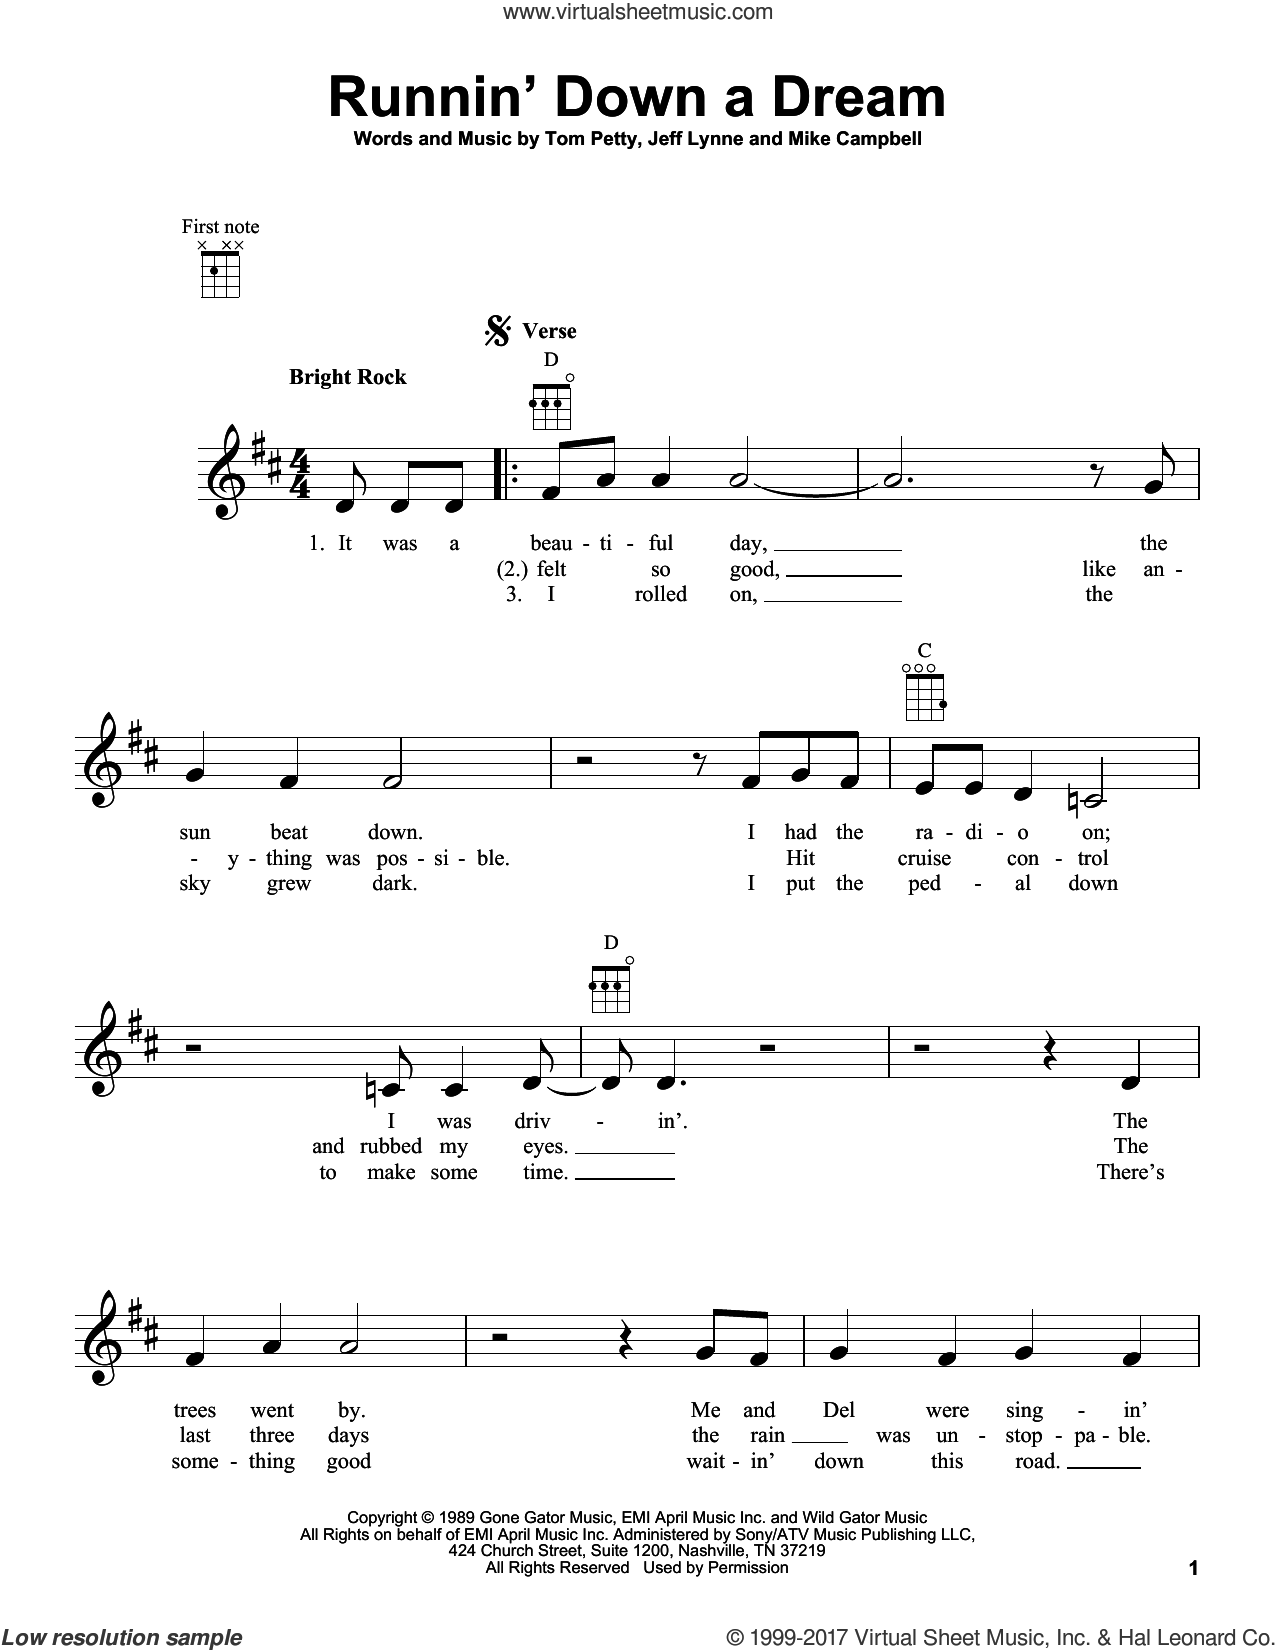 Runnin' Down A Dream sheet music for ukulele by Tom Petty, Jeff Lynne and Mike Campbell, intermediate skill level